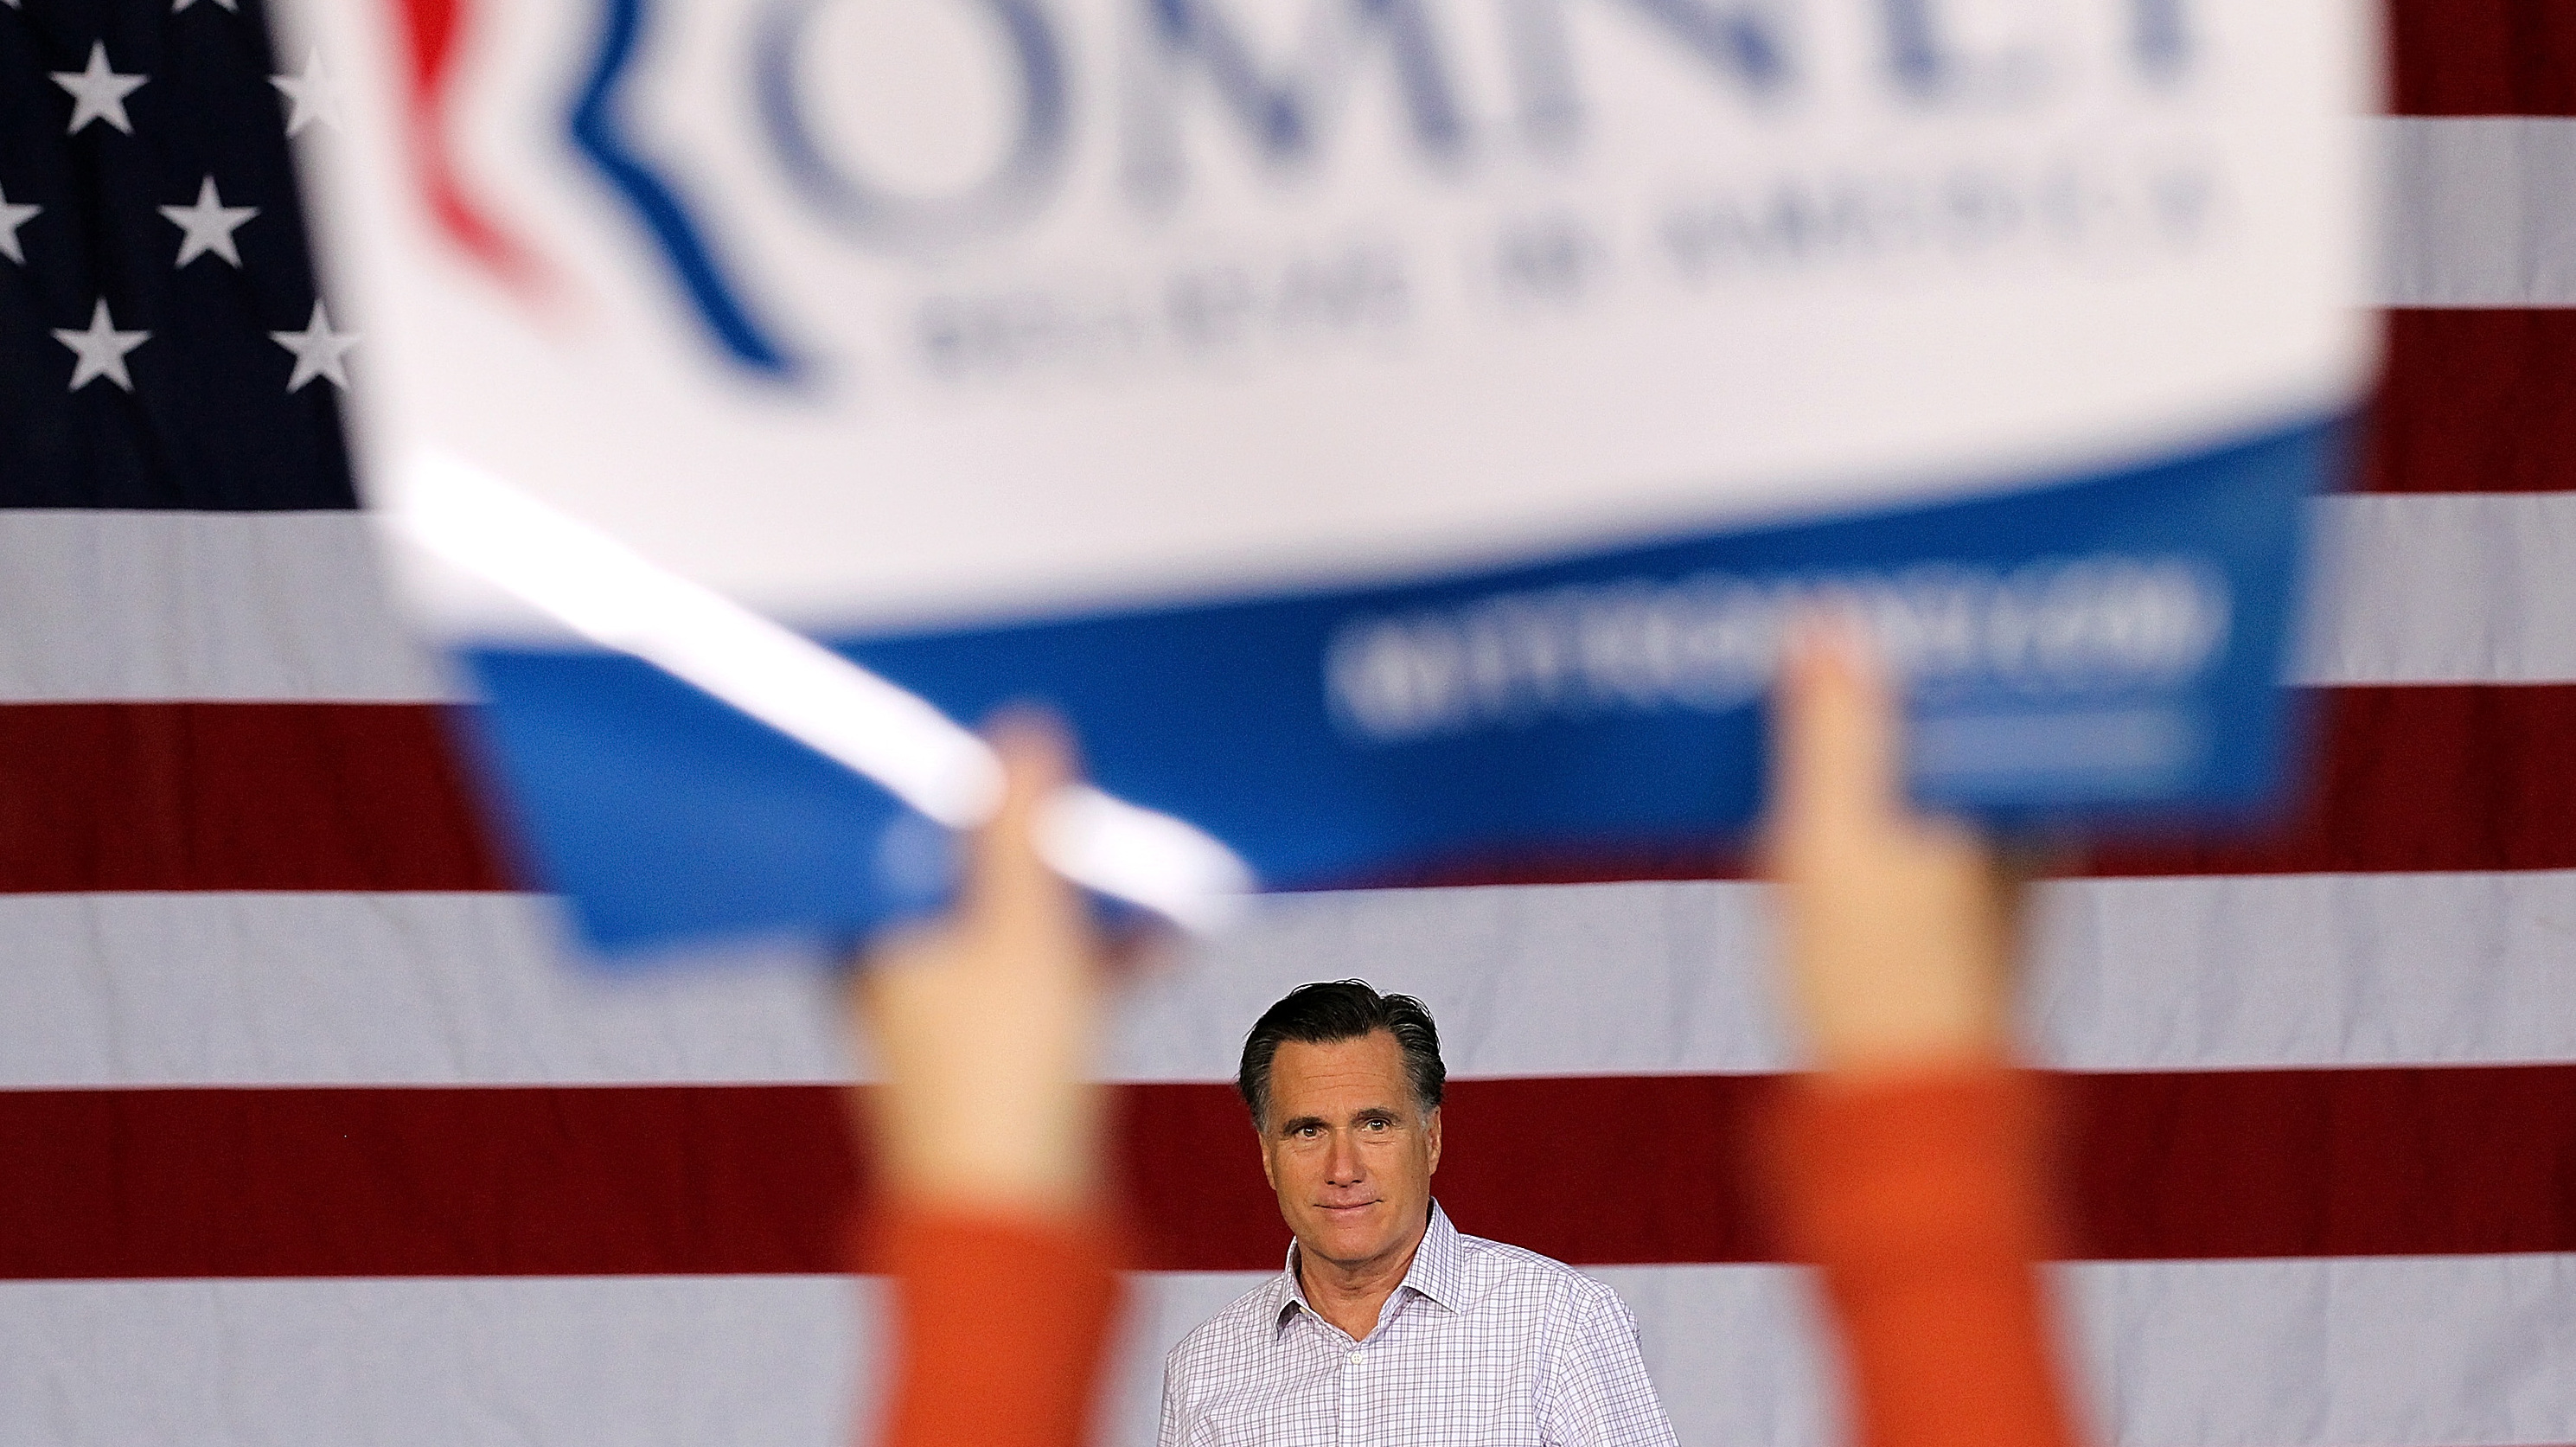 Excerpts from Romney&#039;s Liberty address largely ignore religion